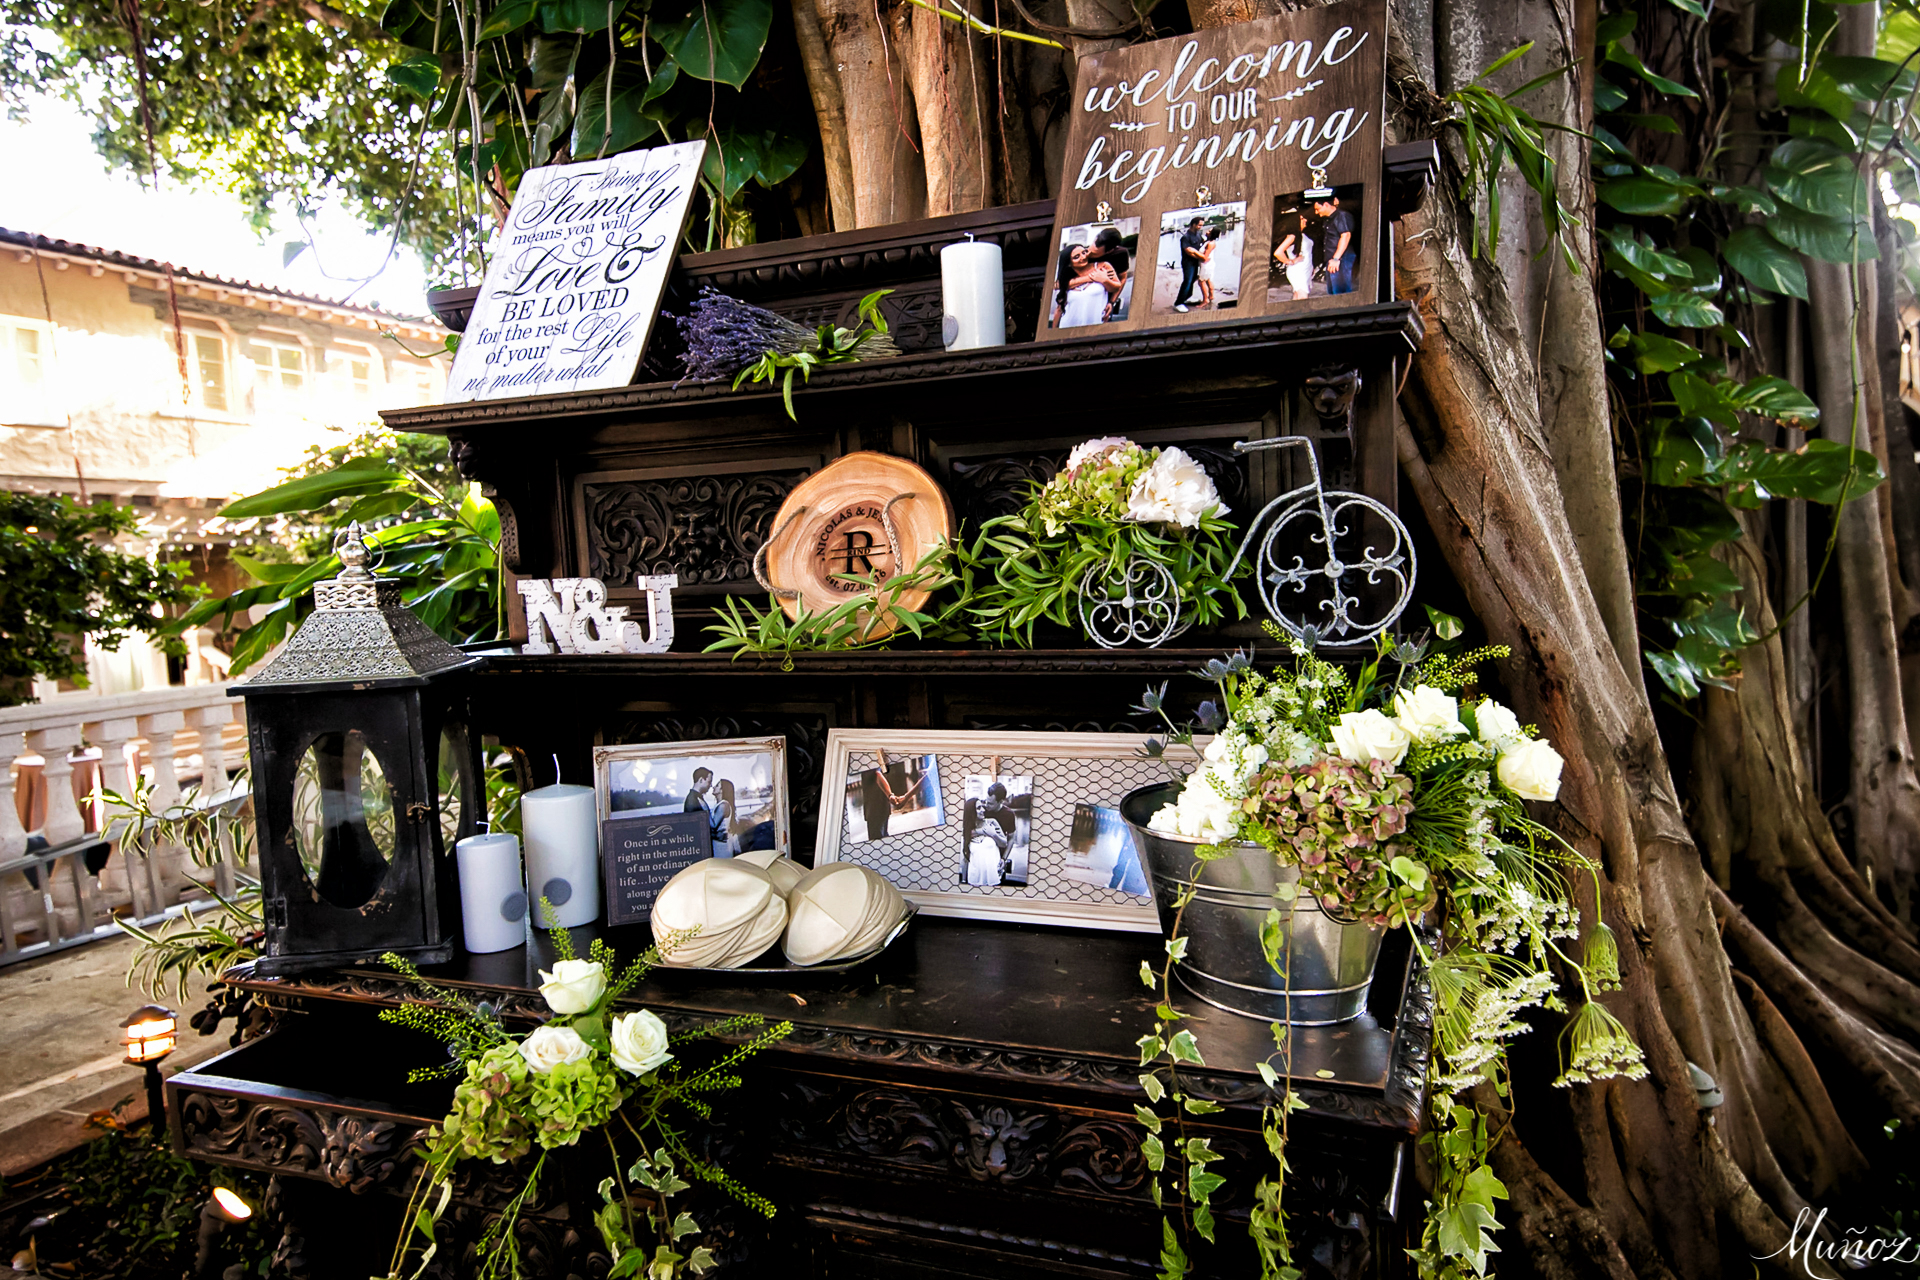 The best Wedding arrival display